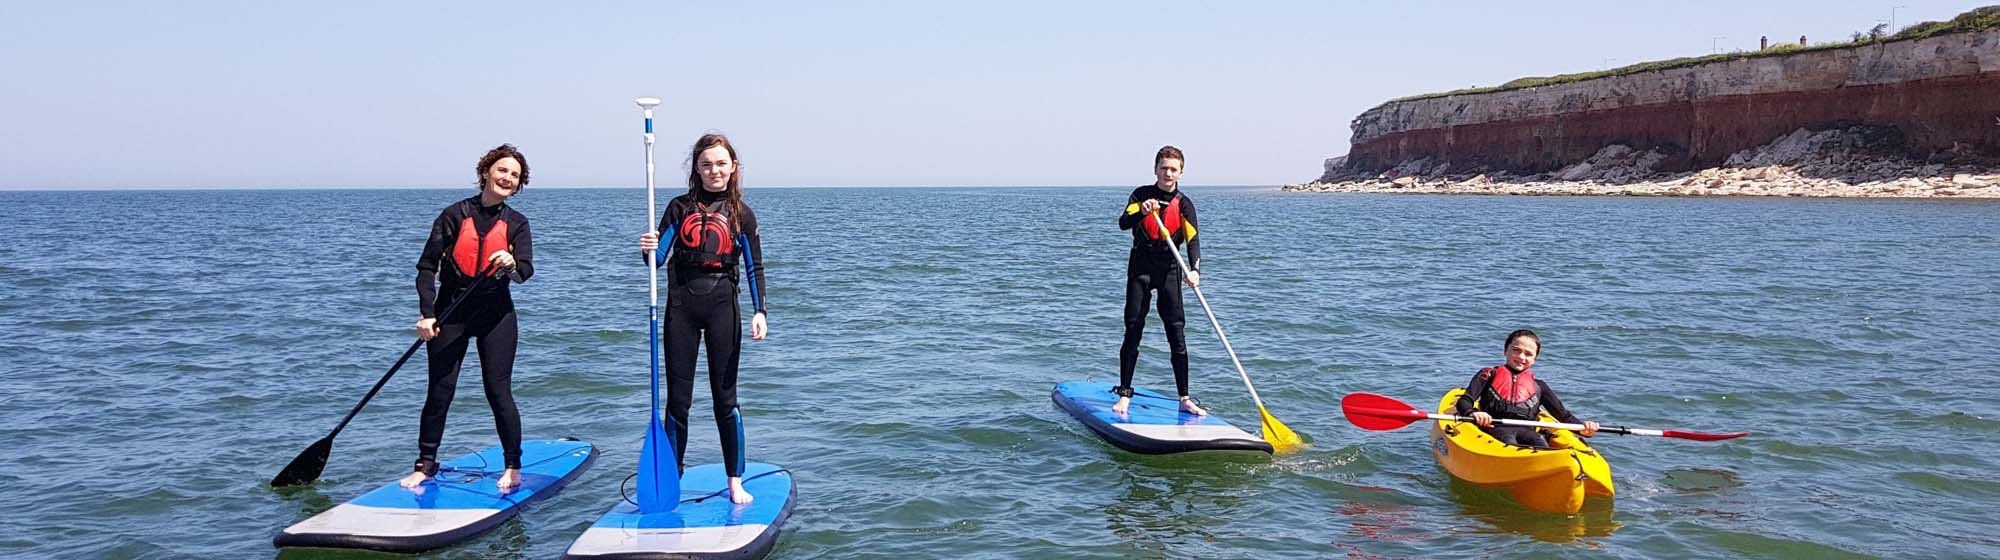 Paddleboarding in the Sun Hunstanton